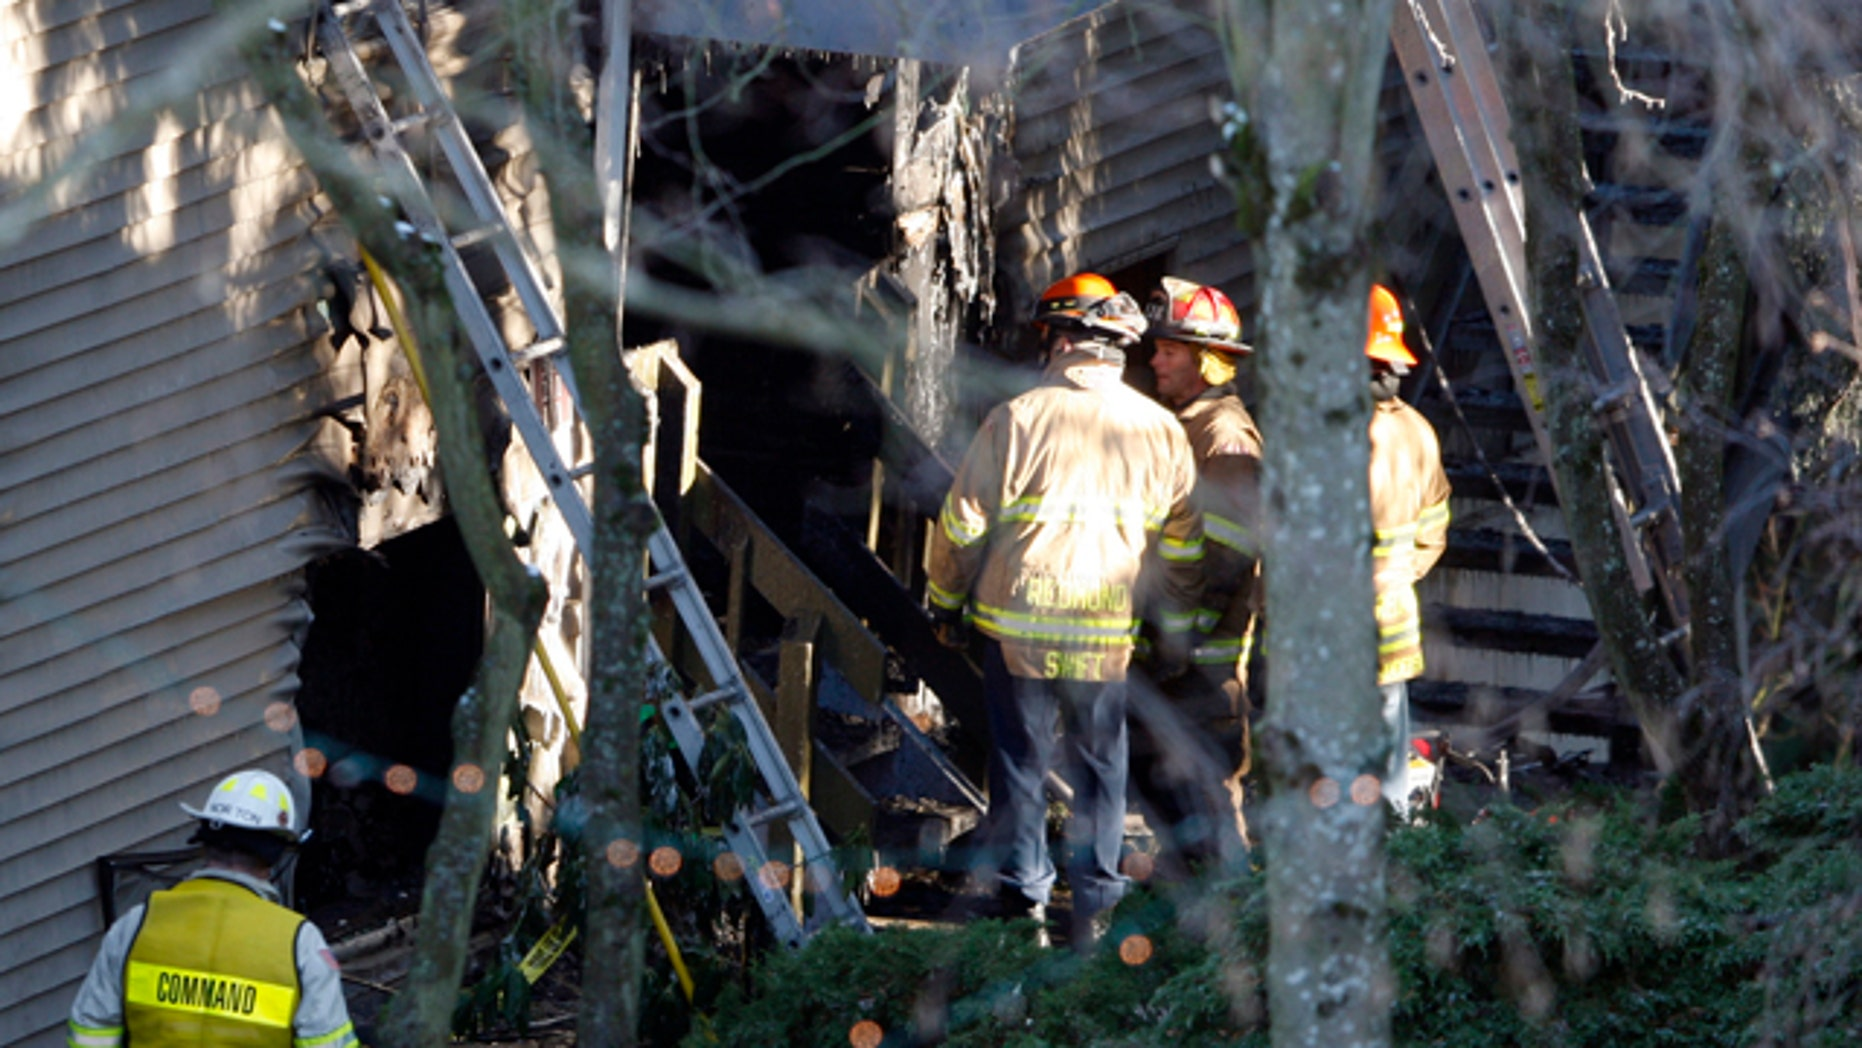 Jan. 1, 2011: Redmond firefighters and investigators insepct the scene of an apartment fire that claimed the lives of five people in Redmond, Wash.